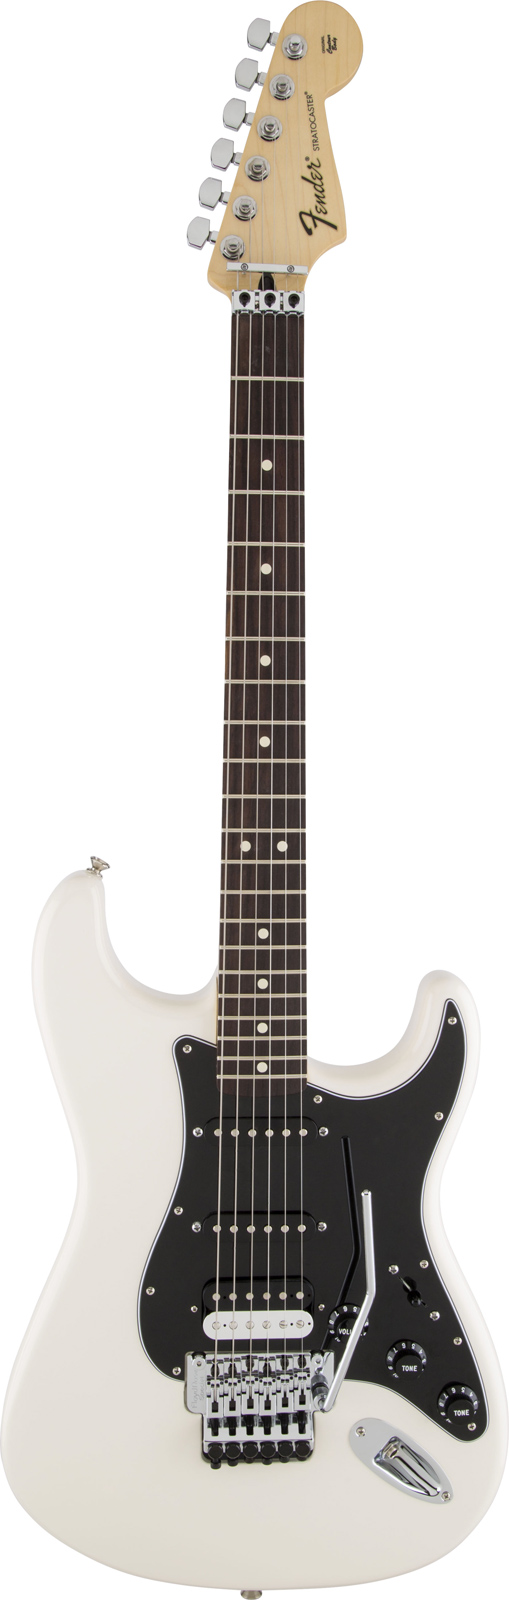 Fender Mexican Standard Stratocaster Hss Floyd Rose Rw Olympic White